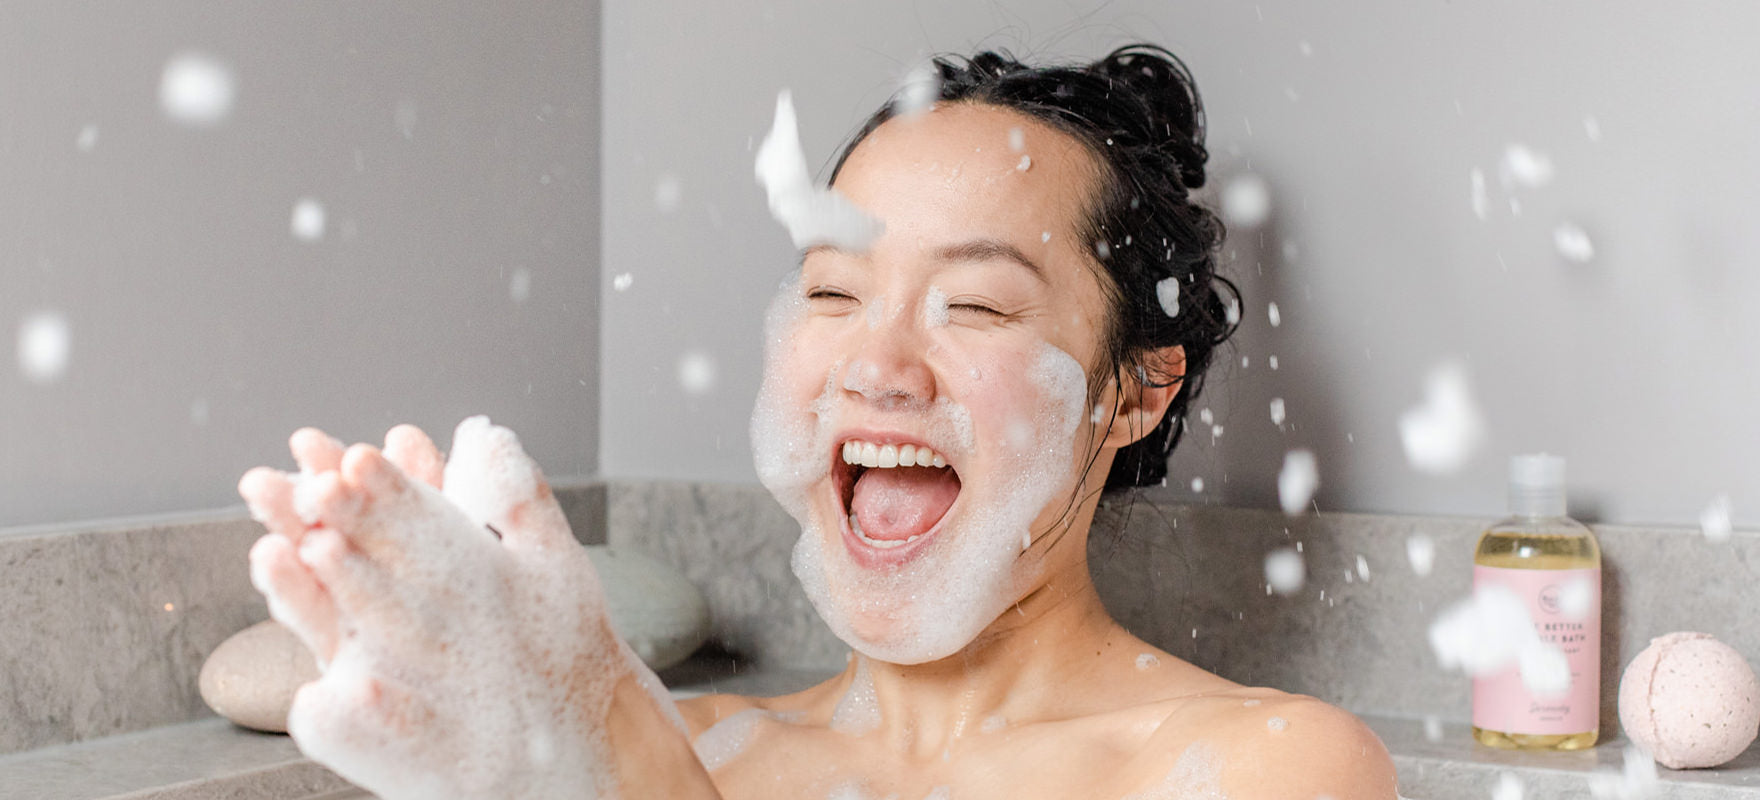 Woman laughing and clapping her hand throwing bubbles everywhere in the bath using SLS-free all-natural bubble bath from Rocky Mountain Soap Company